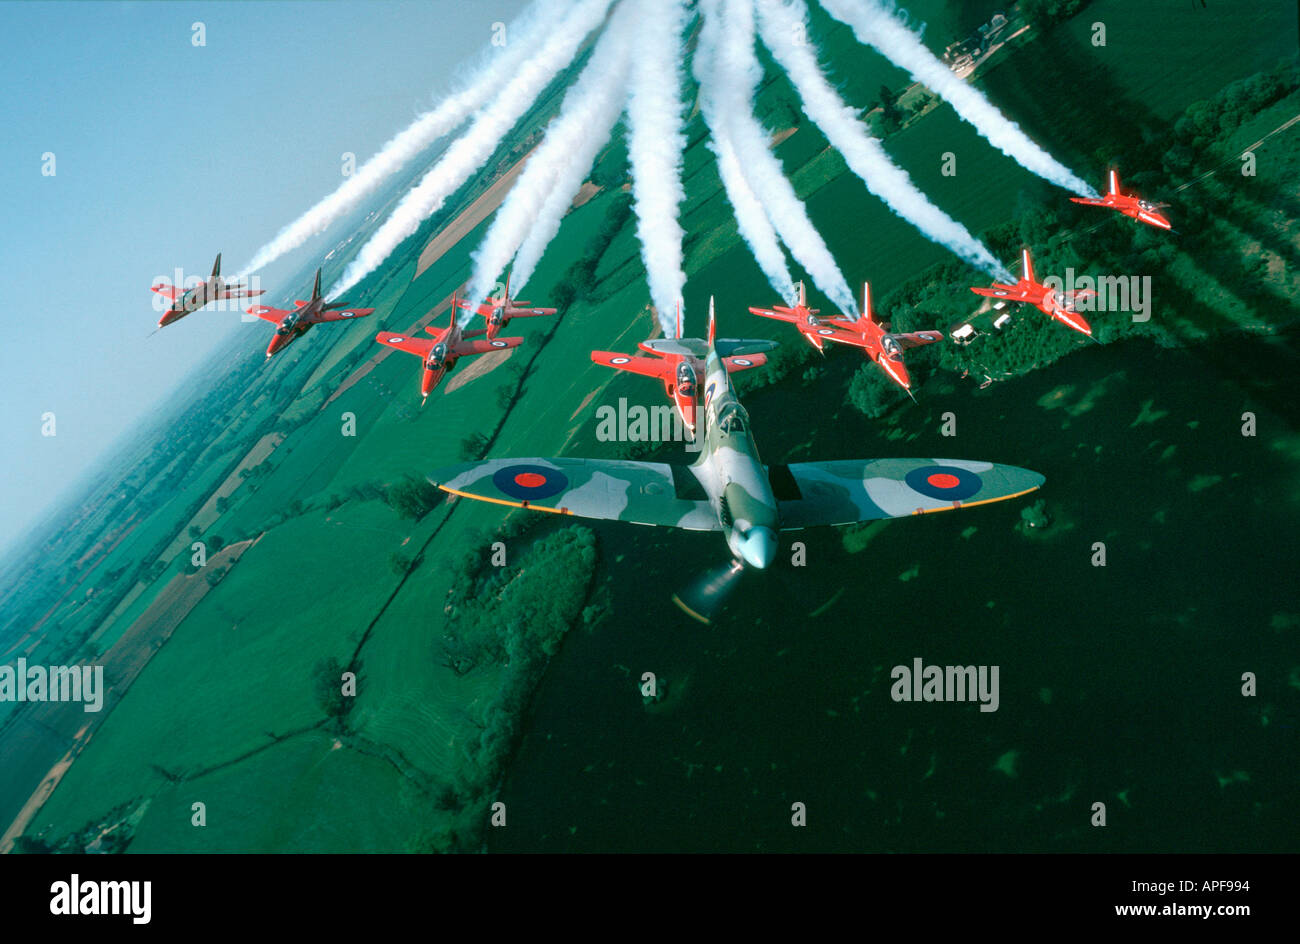 Red Arrows aerobatic team with spitfire - Stock Image